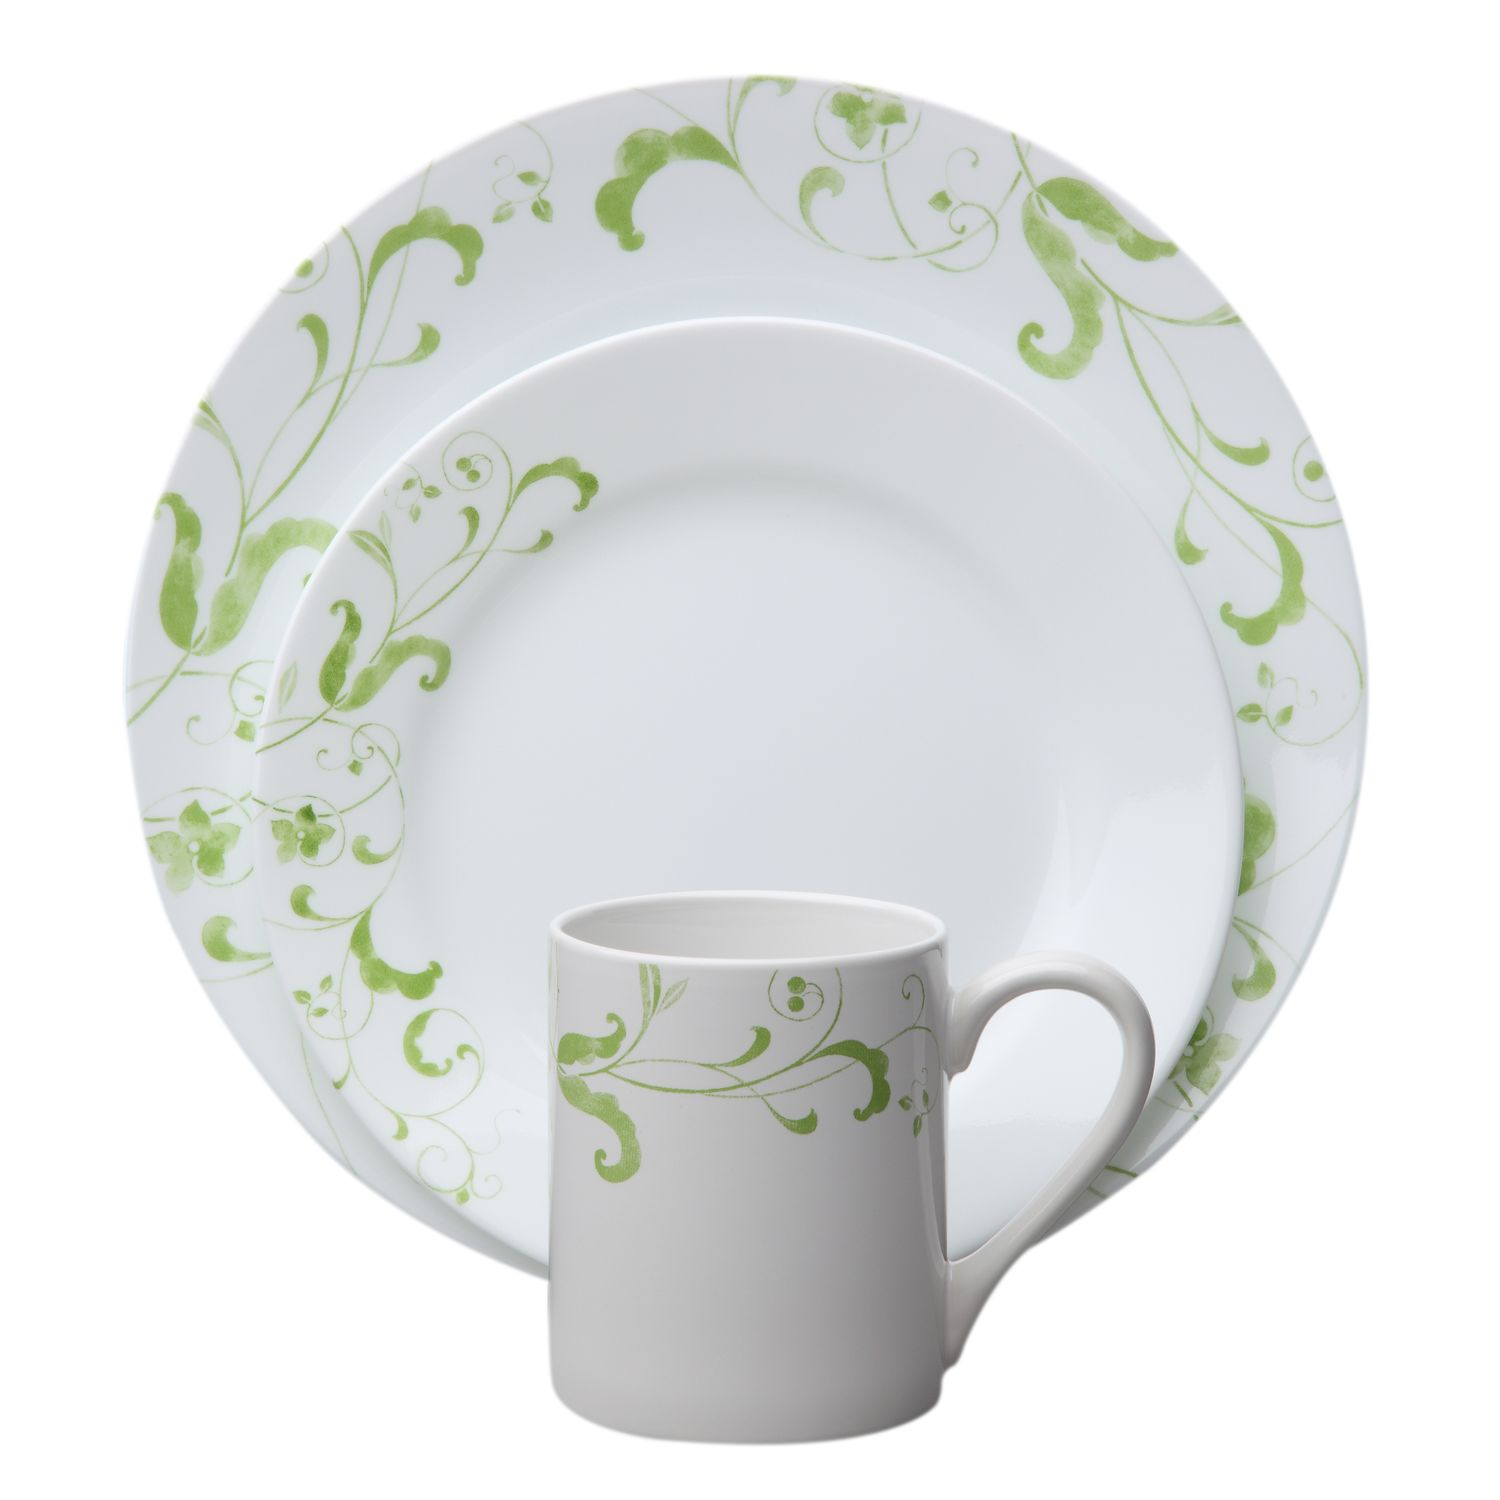 Find Corning Corelle Revere Factory Outlet Locations * Store locations can change frequently. Please check directly with the retailer for a current list of locations before your visit. Alabama. Foley, AL. Tanger Outlets - Foley, AL Corning Corelle Revere Factory Outlet. Phone: ()